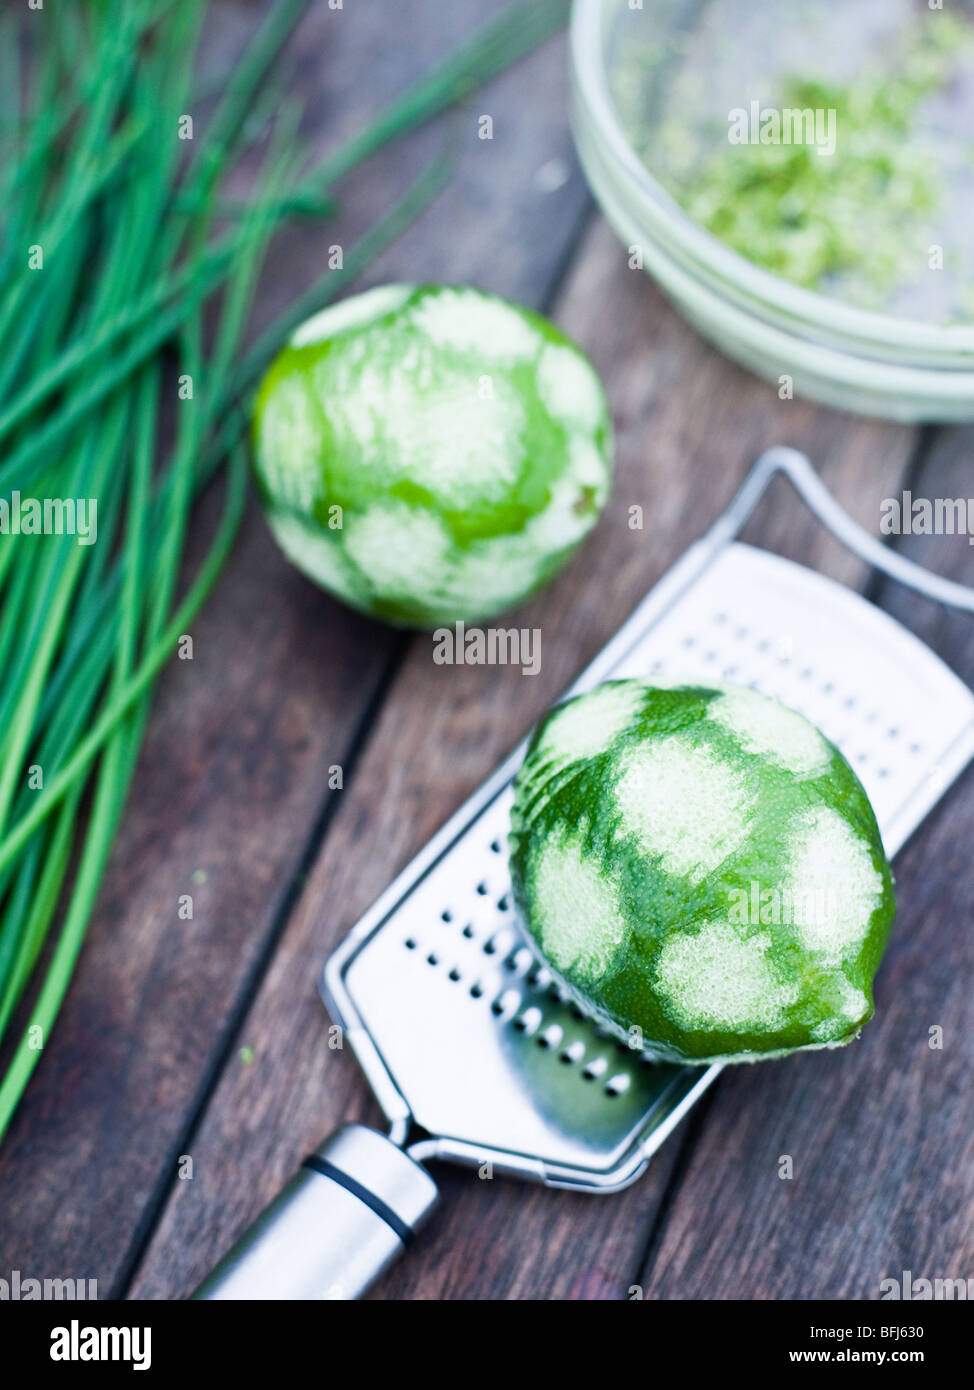 Lime, close-up, Sweden. Stock Foto